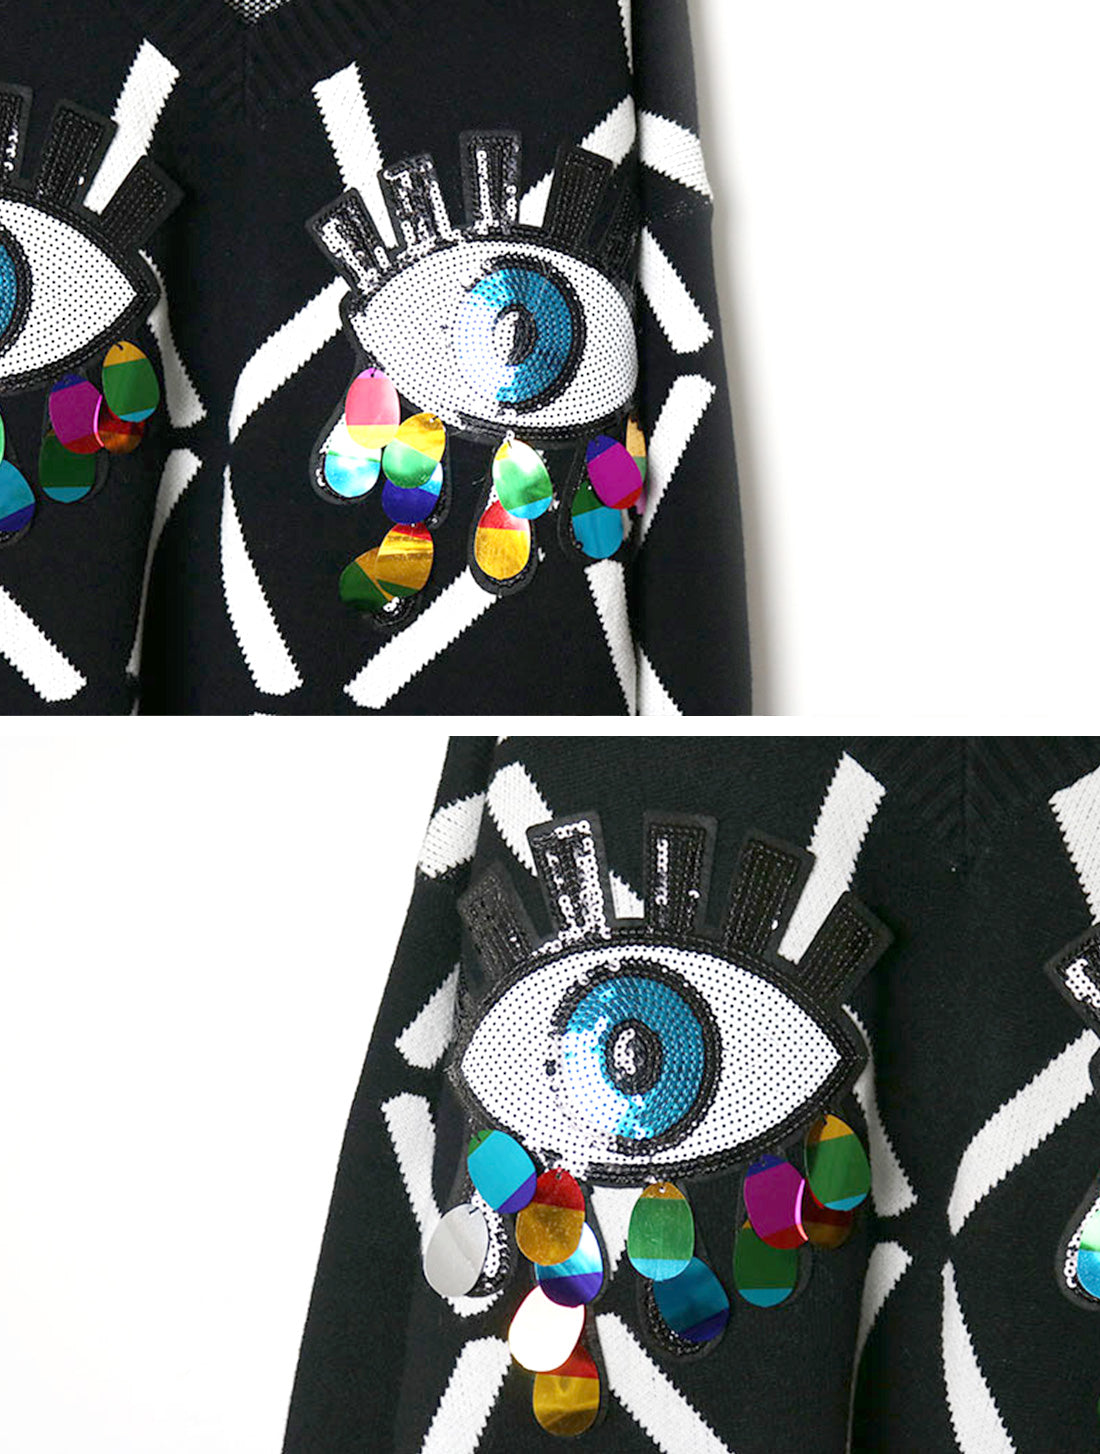 I can See You Black Sweater Top Details 3